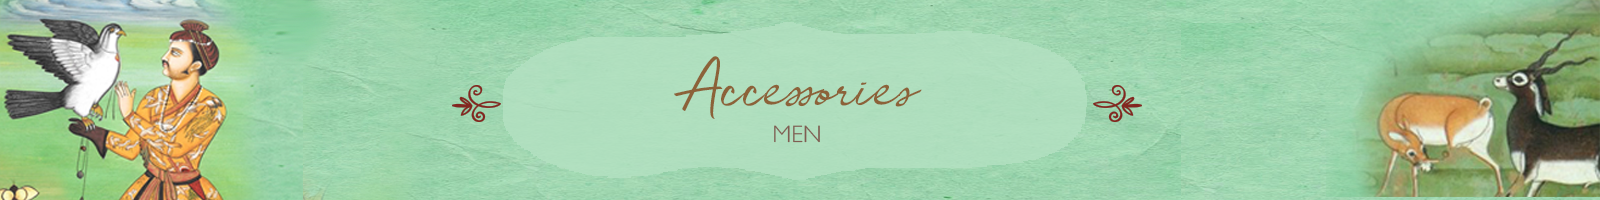 Authentic Handcrafted Accessories for Men by The India Craft House